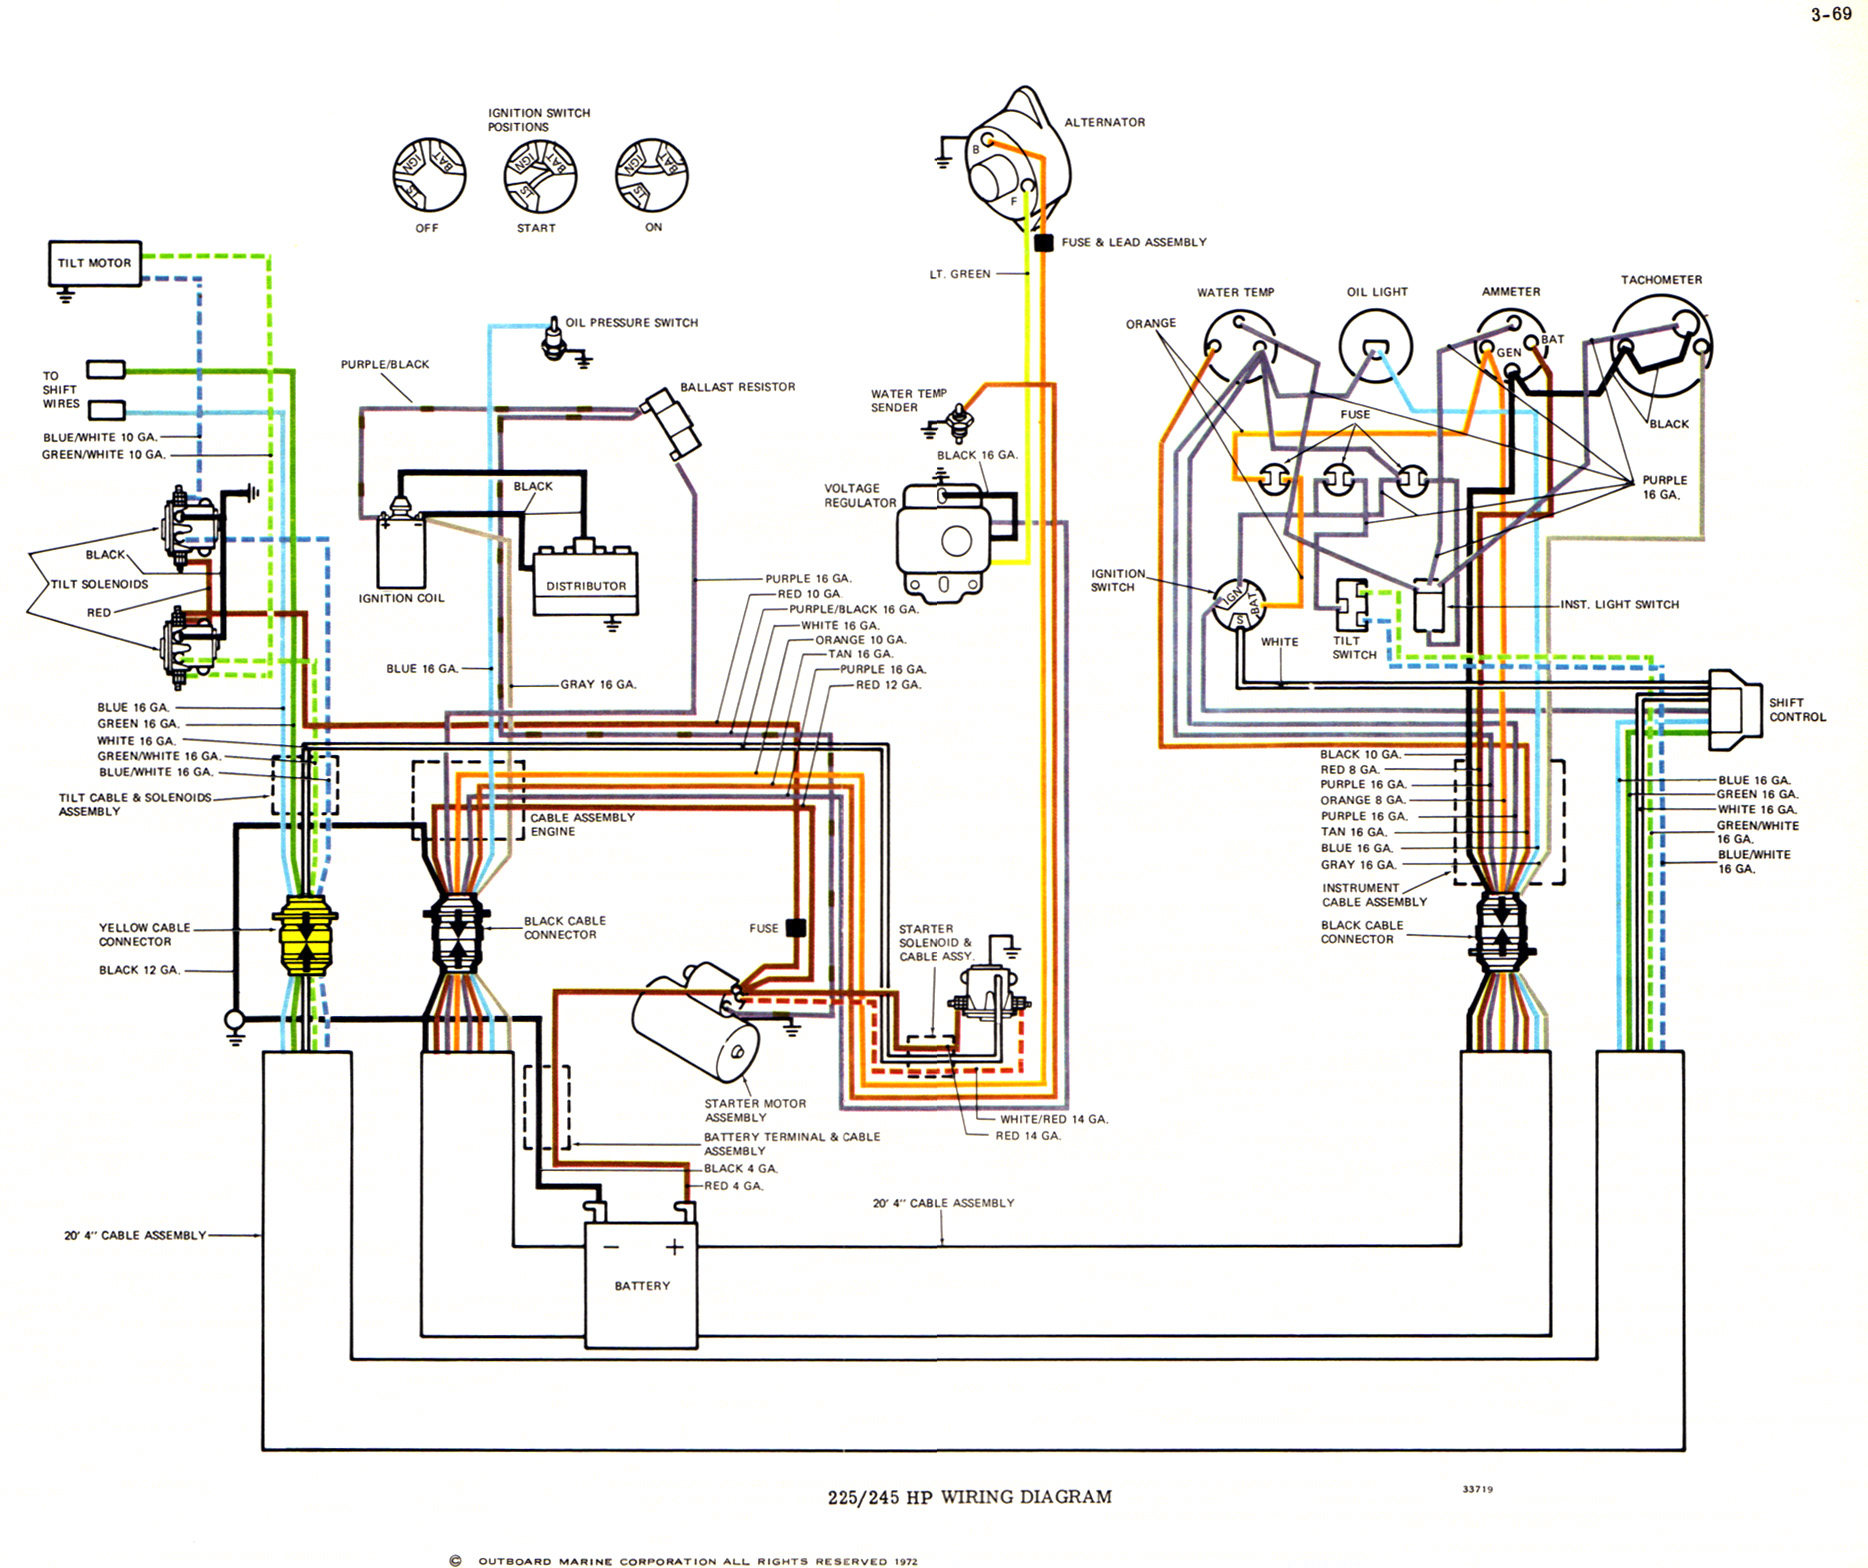 Omc Wiring Diagram Ford V8 - Wiring Diagram Text left-writer -  left-writer.albergoristorantecanzo.itleft-writer.albergoristorantecanzo.it